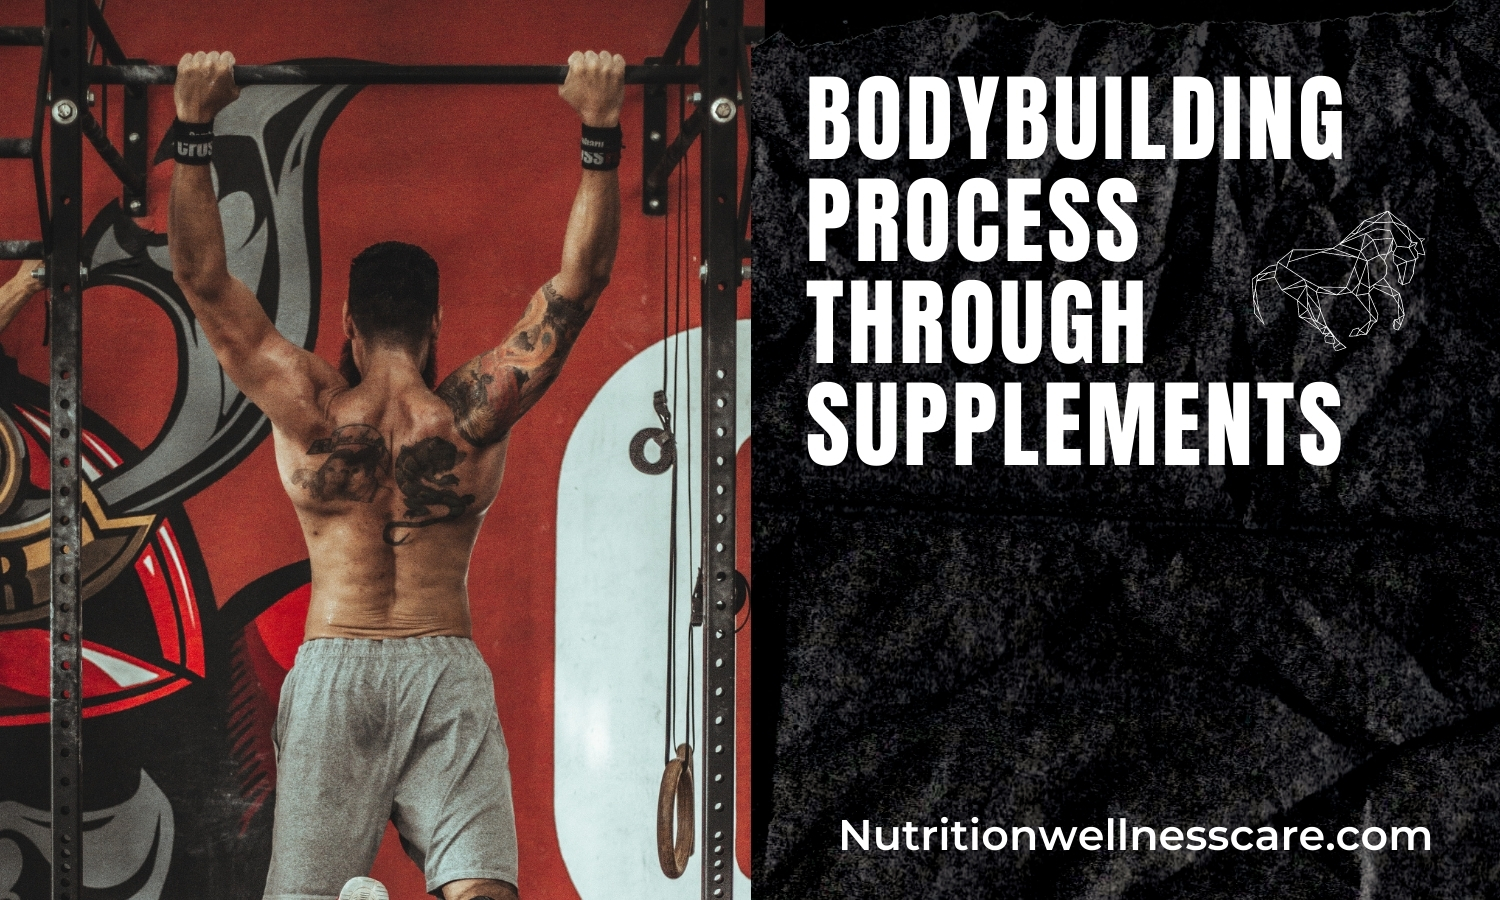 BODYBUILDING PROCESS THROUGH SUPPLEMENTS